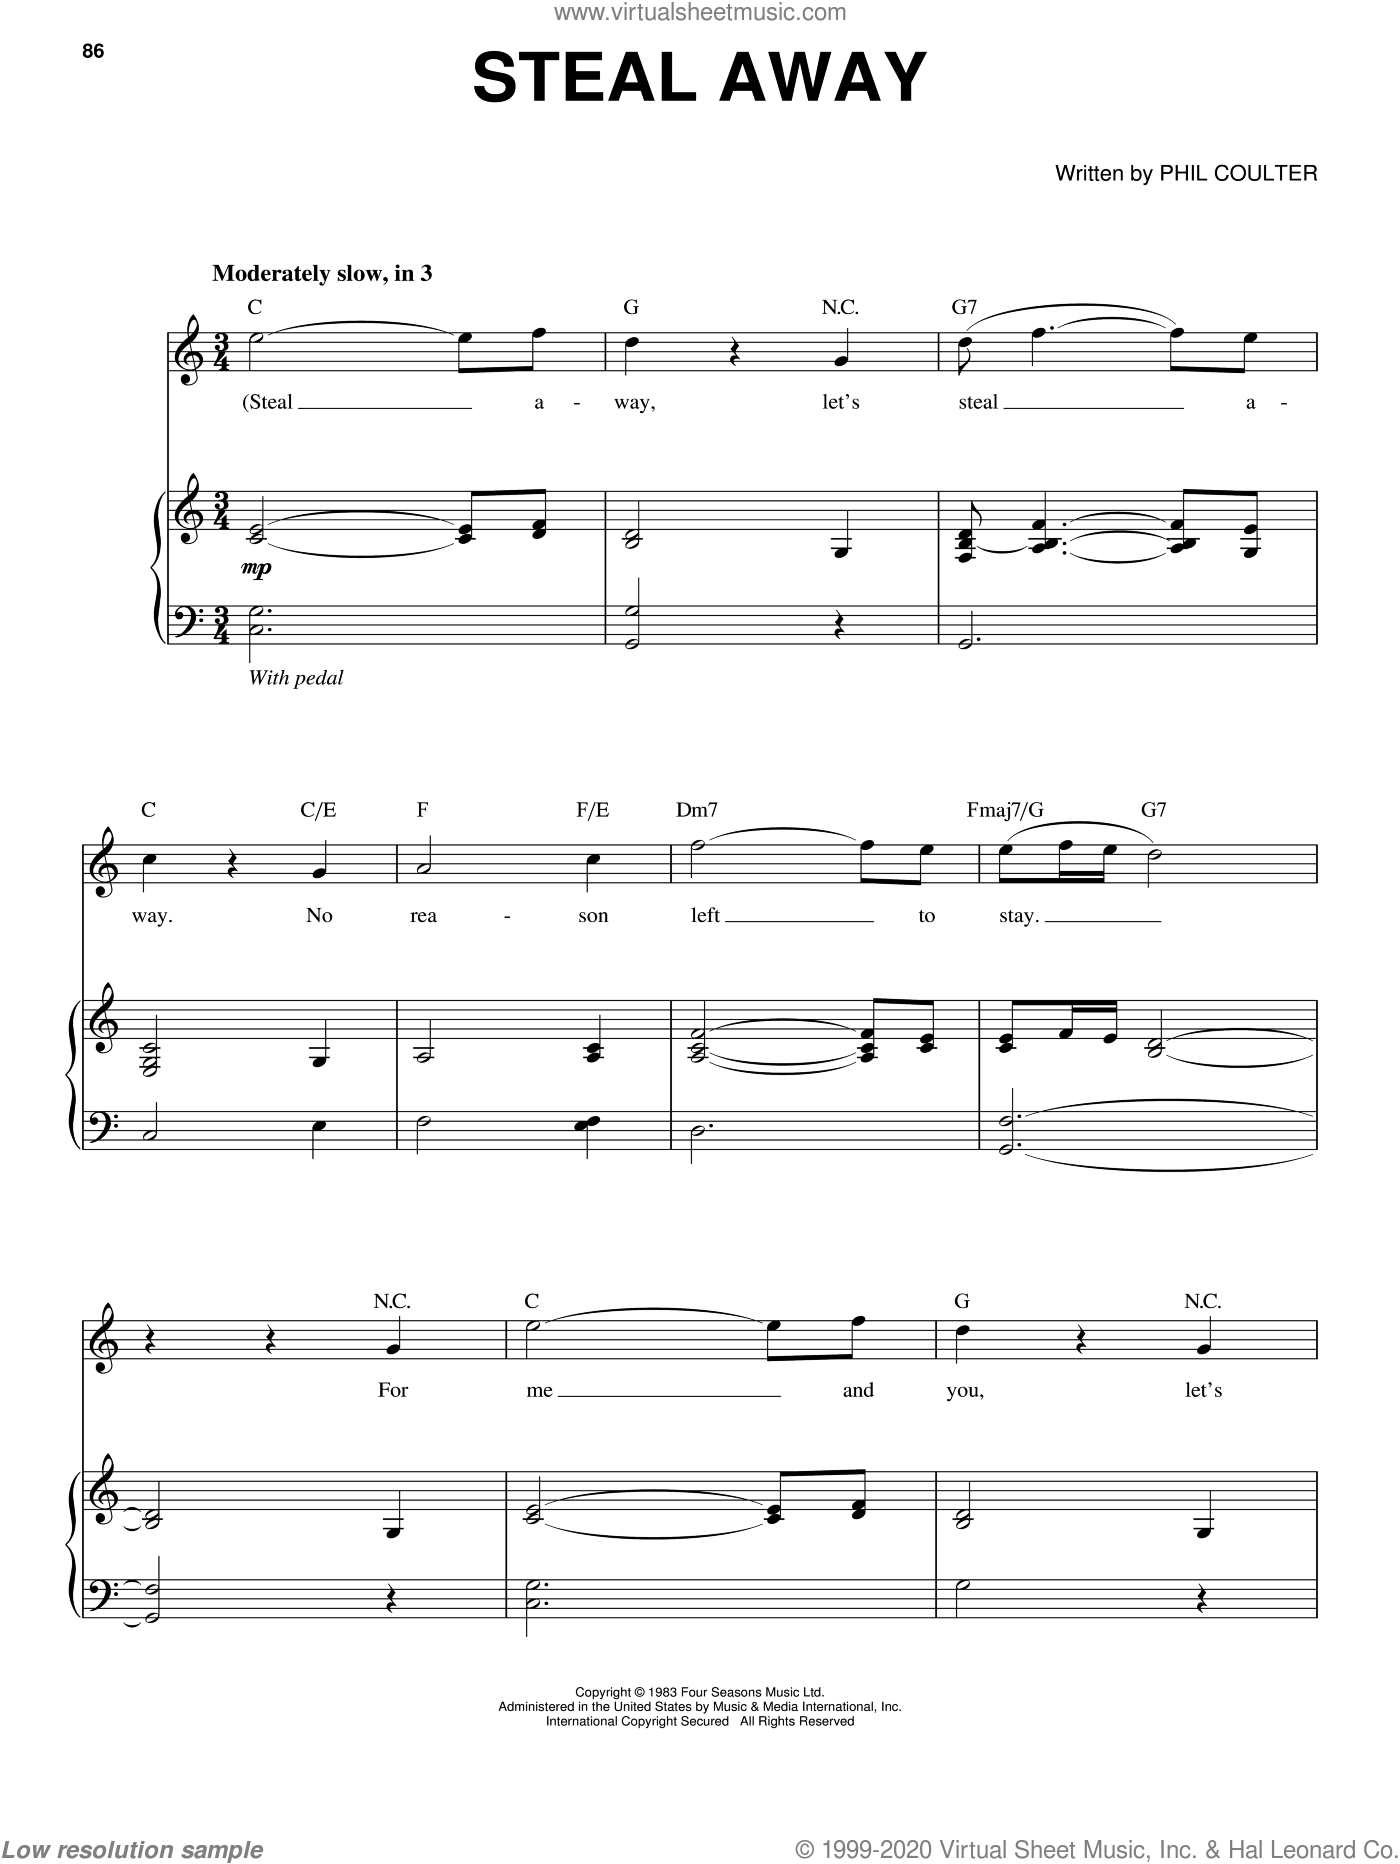 Steal Away sheet music for voice and piano by Phil Coulter